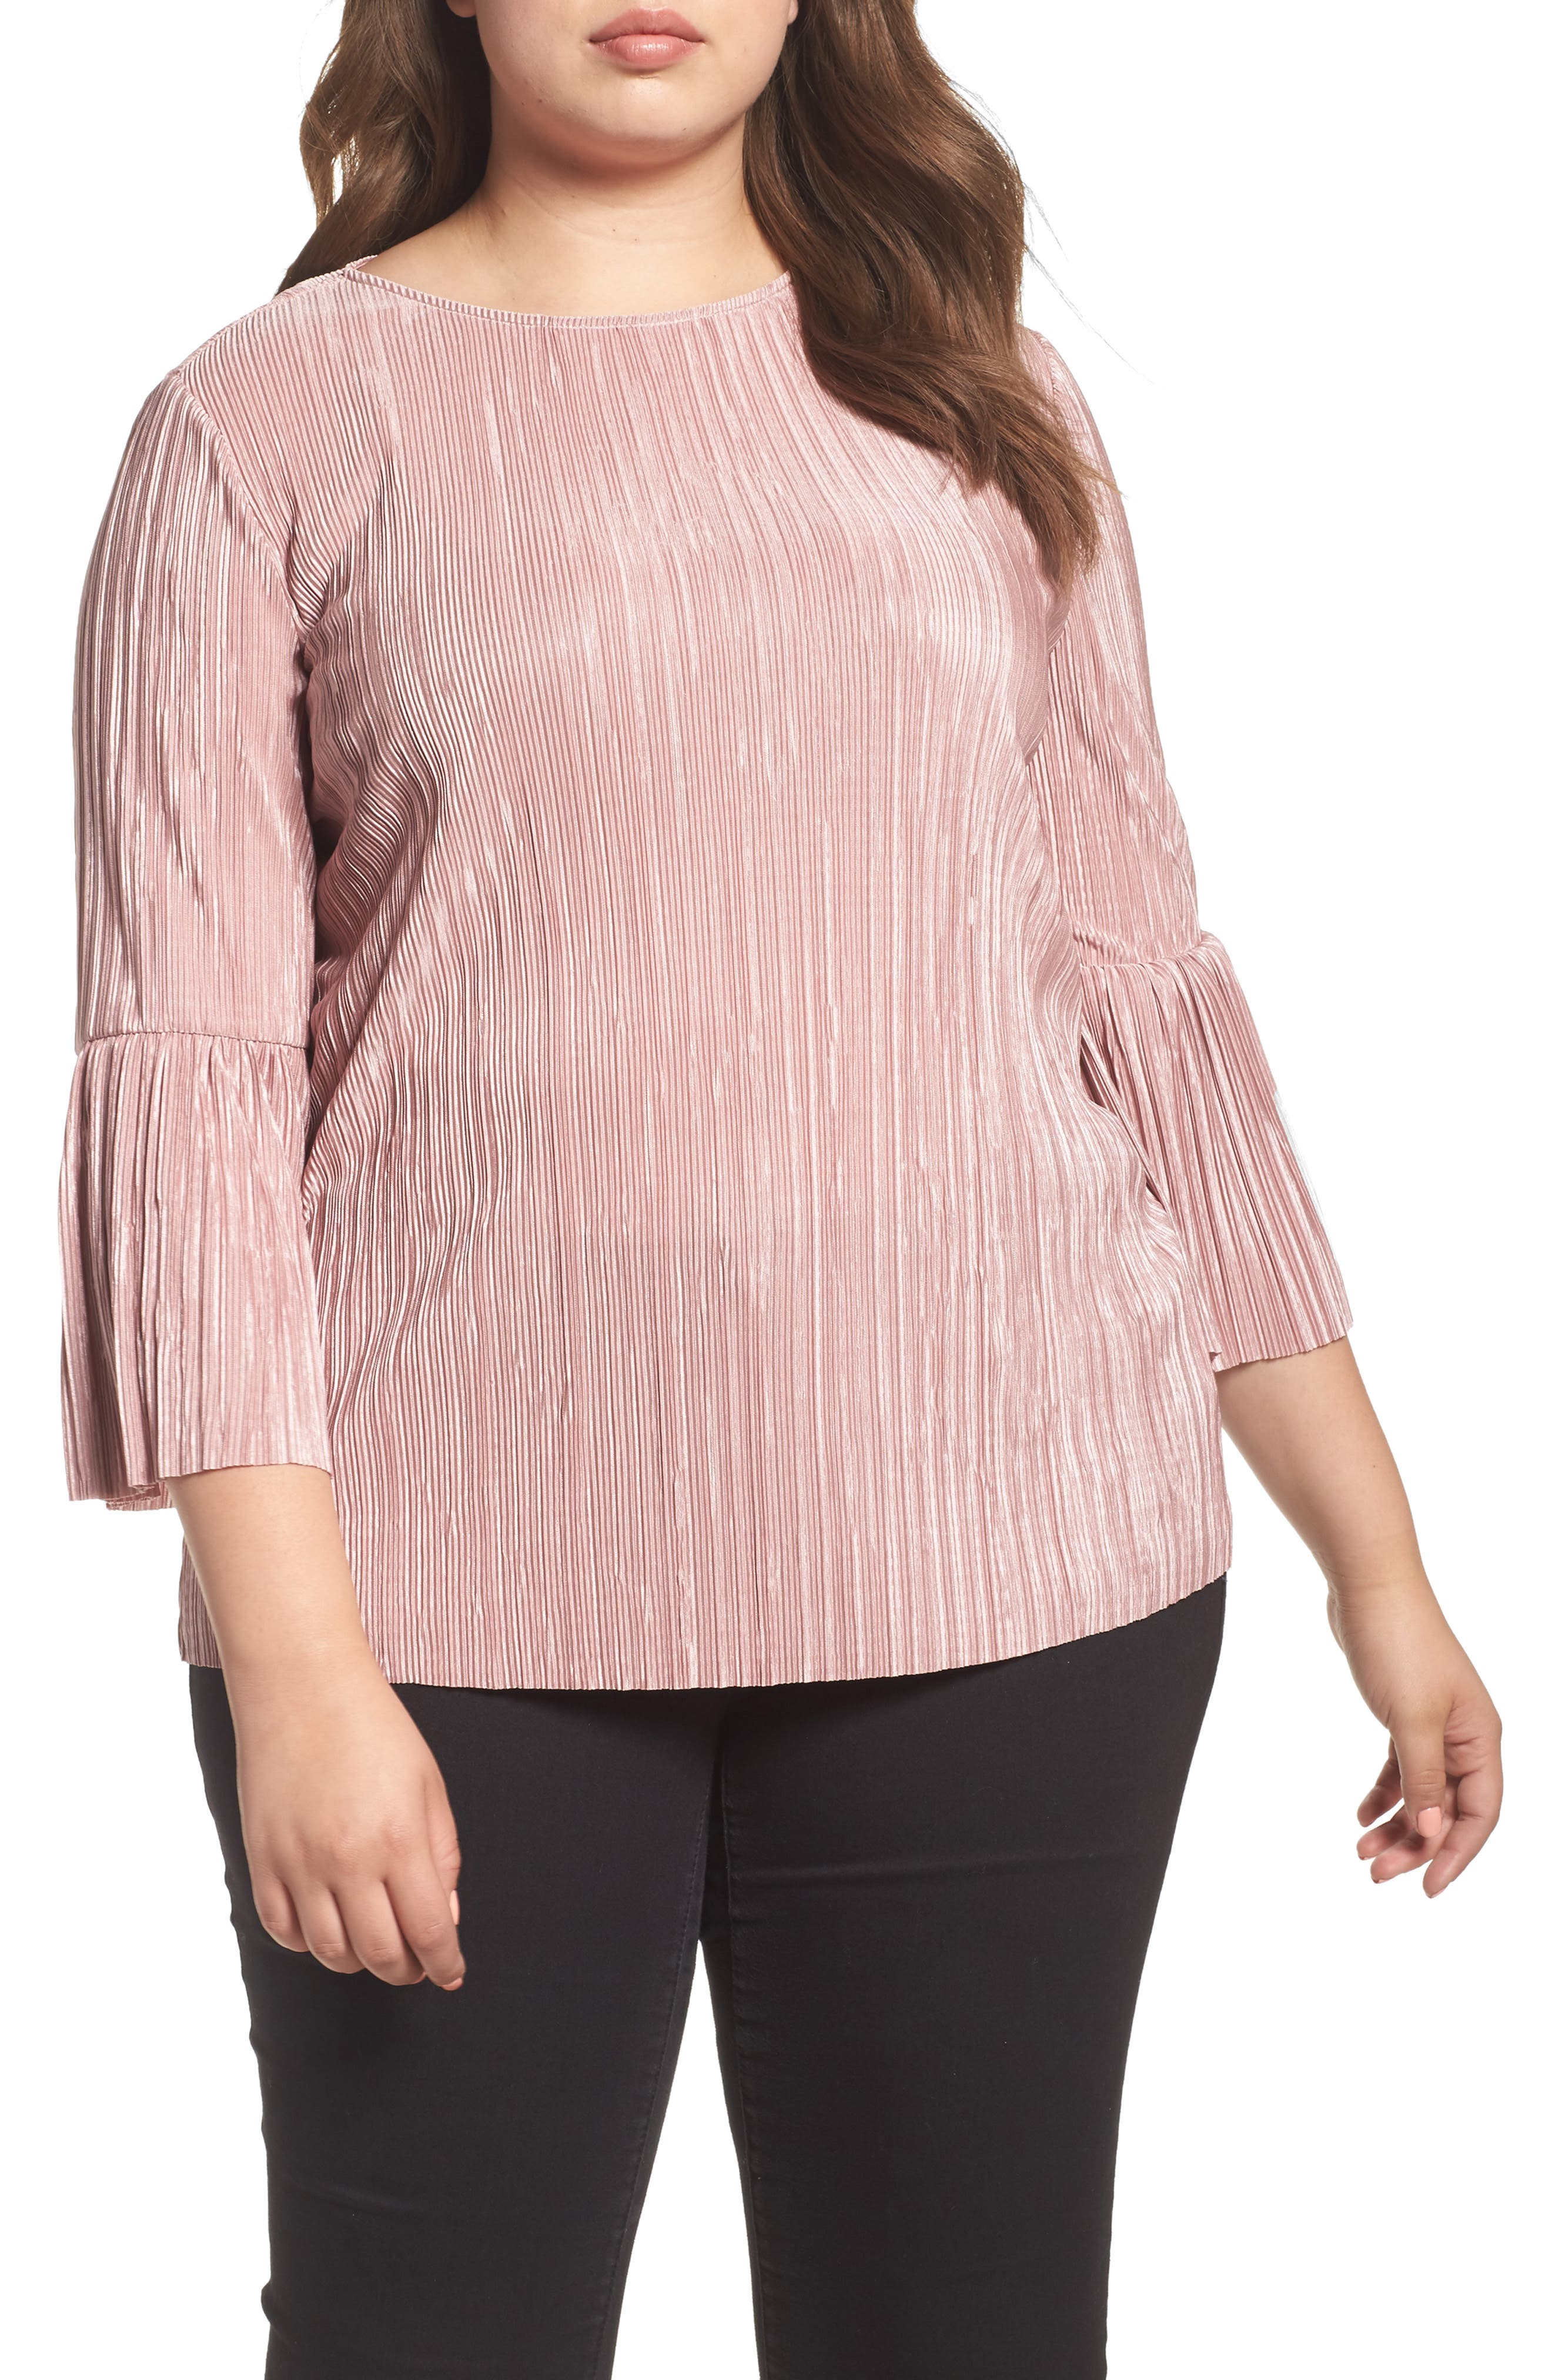 Main Image - Vince Camuto Pleated Knit Bell Sleeve Top (Plus Size)